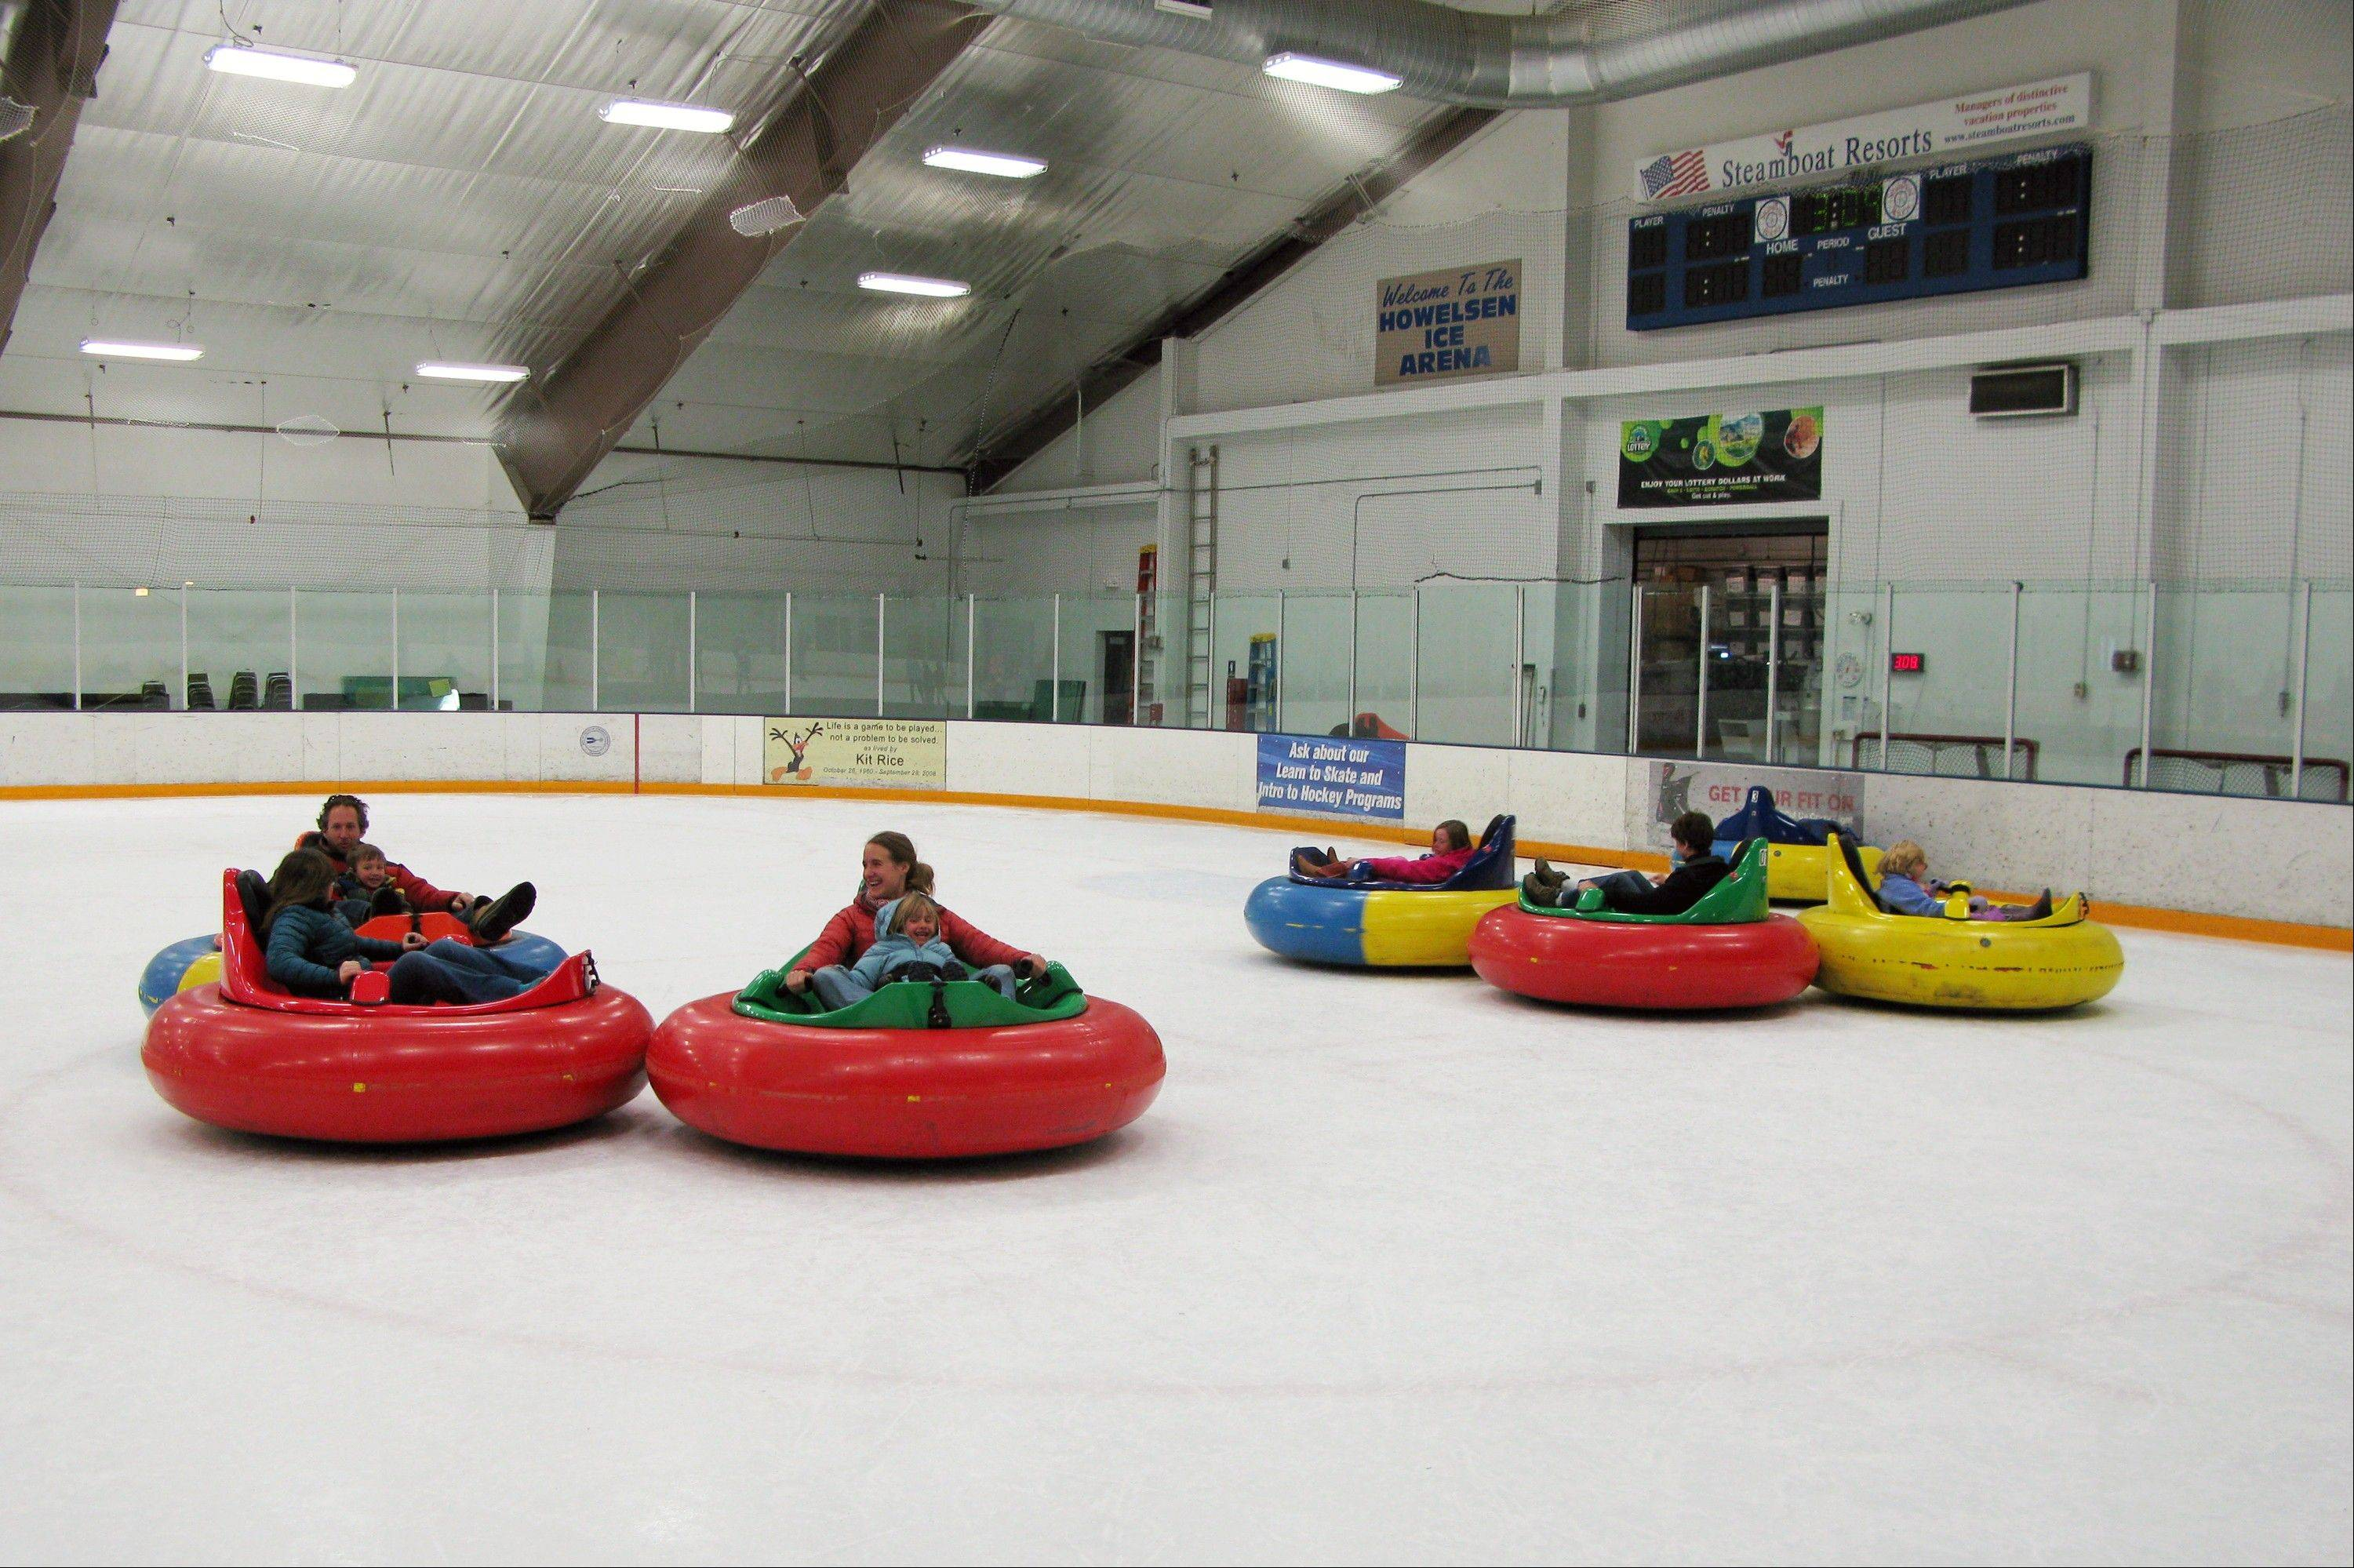 Bumper cars on ice at Howelsen Ice Arena in Steamboat Springs, Colo. Bumper cars are one of a number of relatively new diversions being offered in winter recreation destinations.